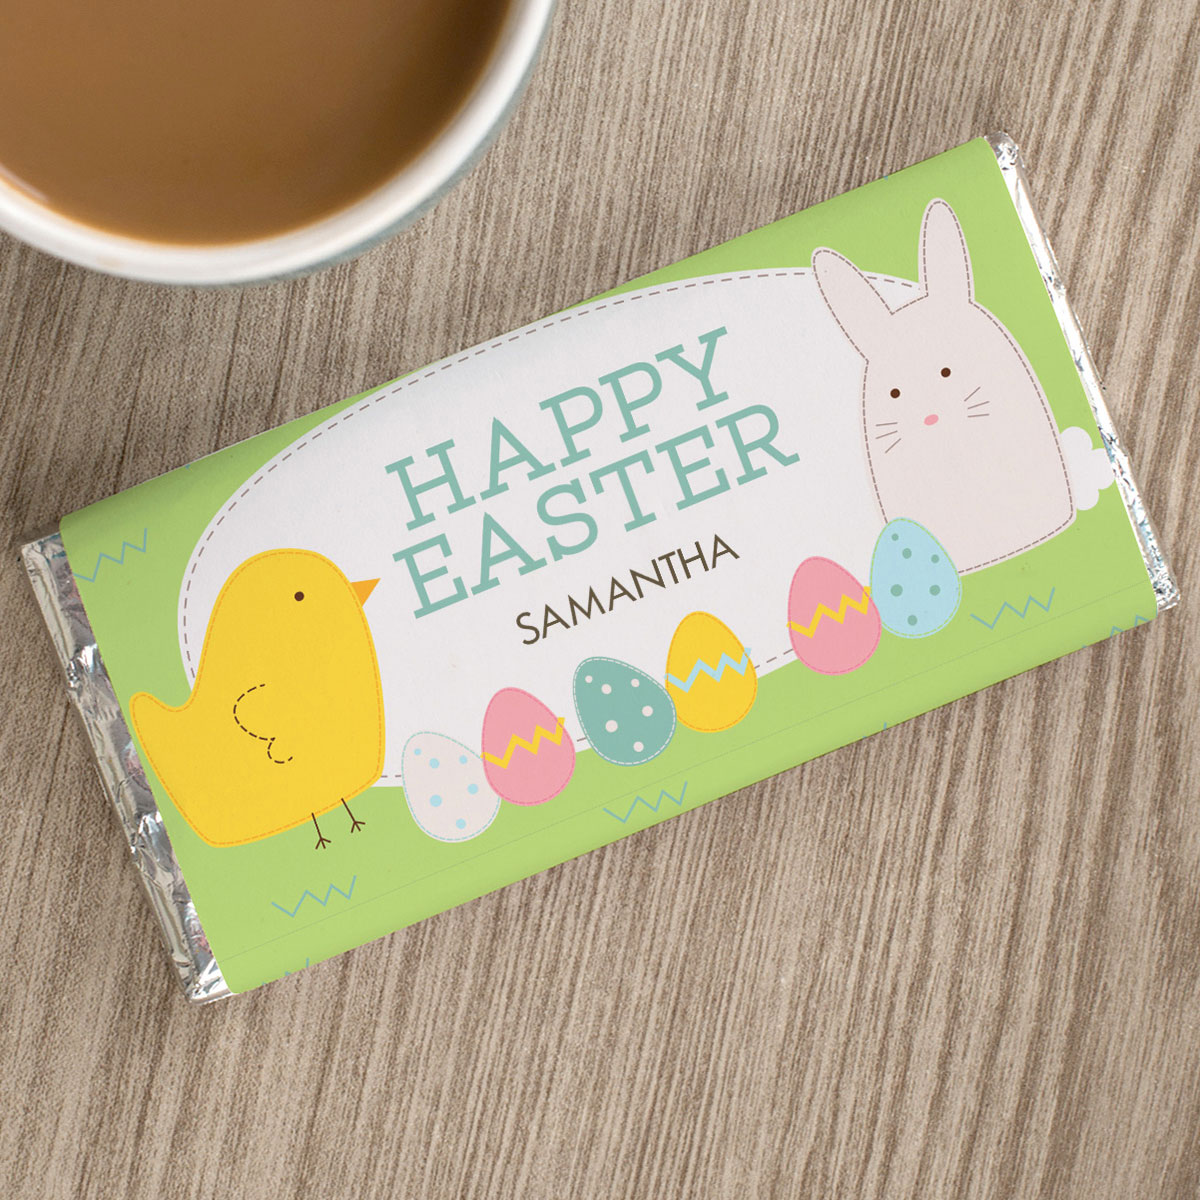 Personalised Chocolate Bar - Happy Easter